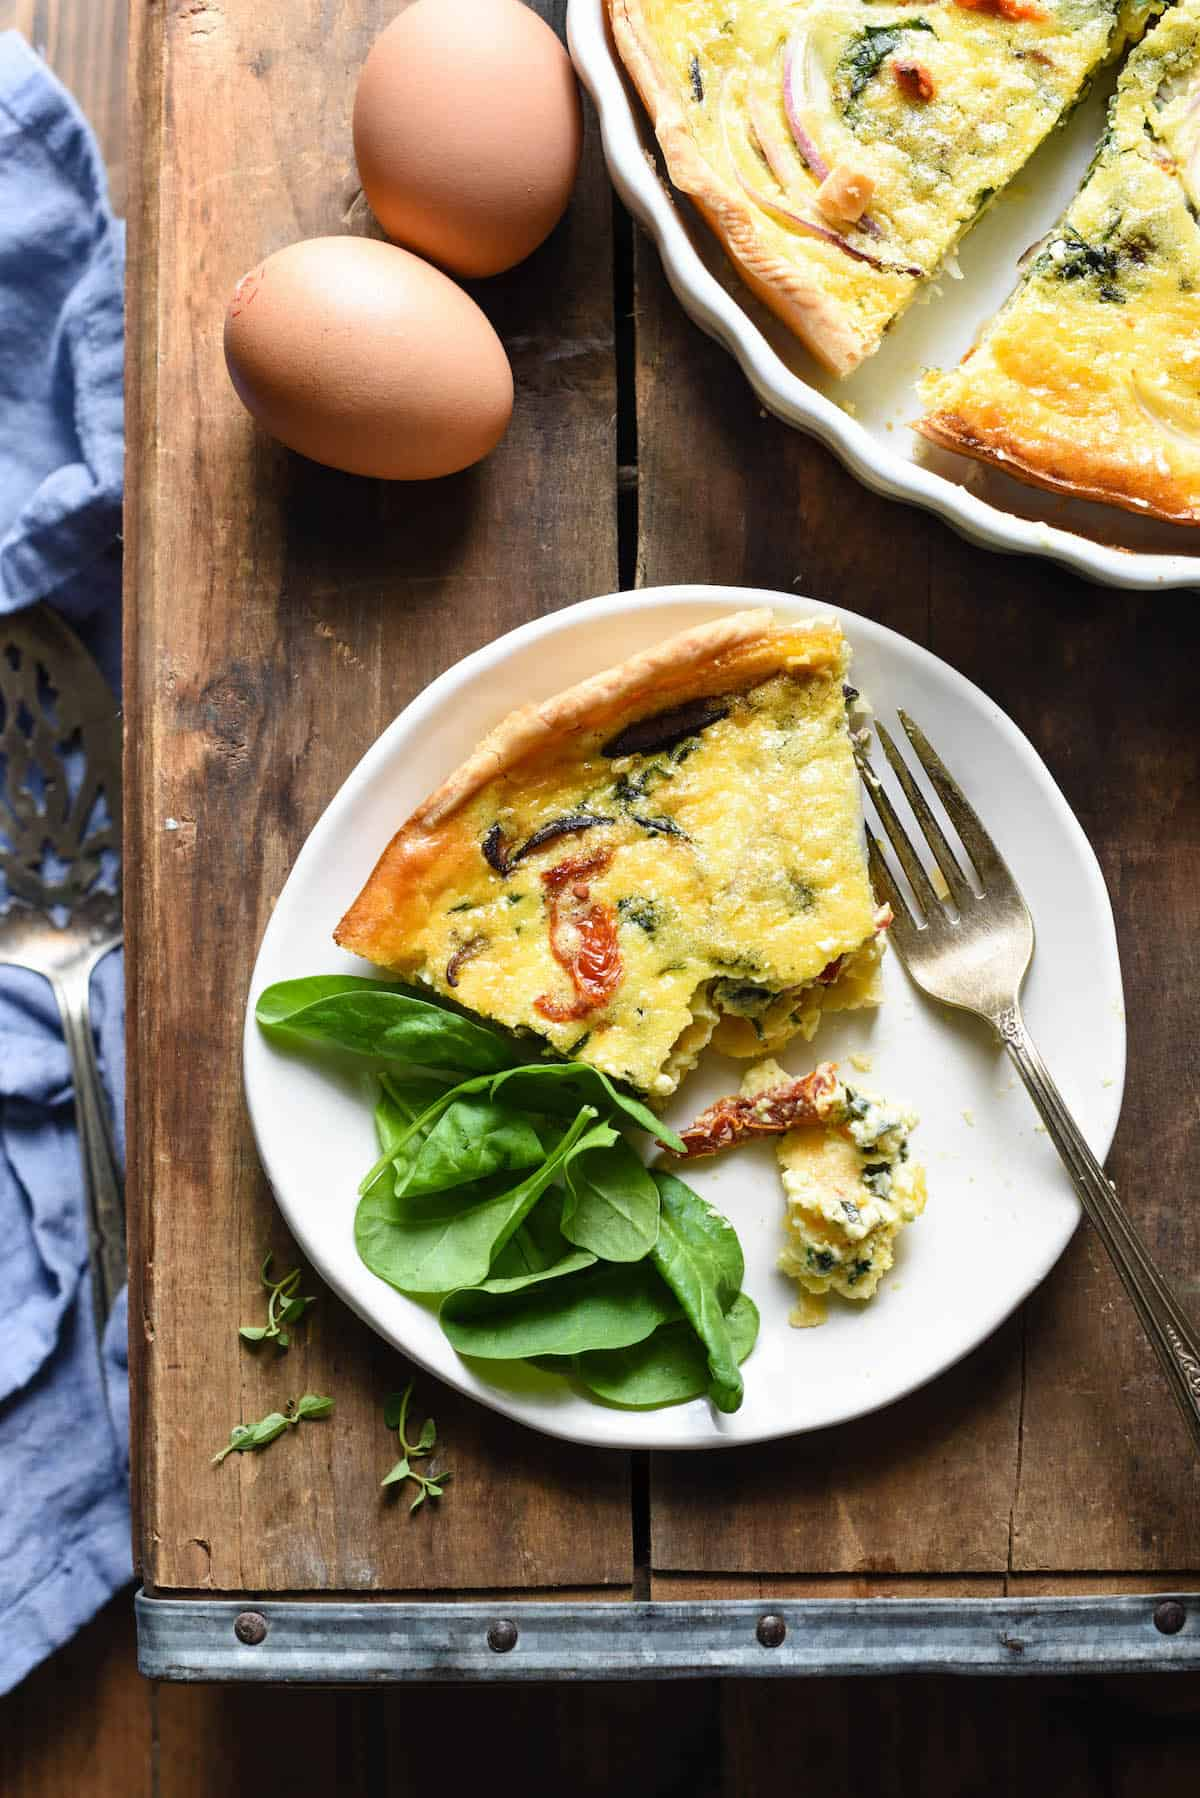 Overhead image of small white place with slice of egg pie and spinach on the side.